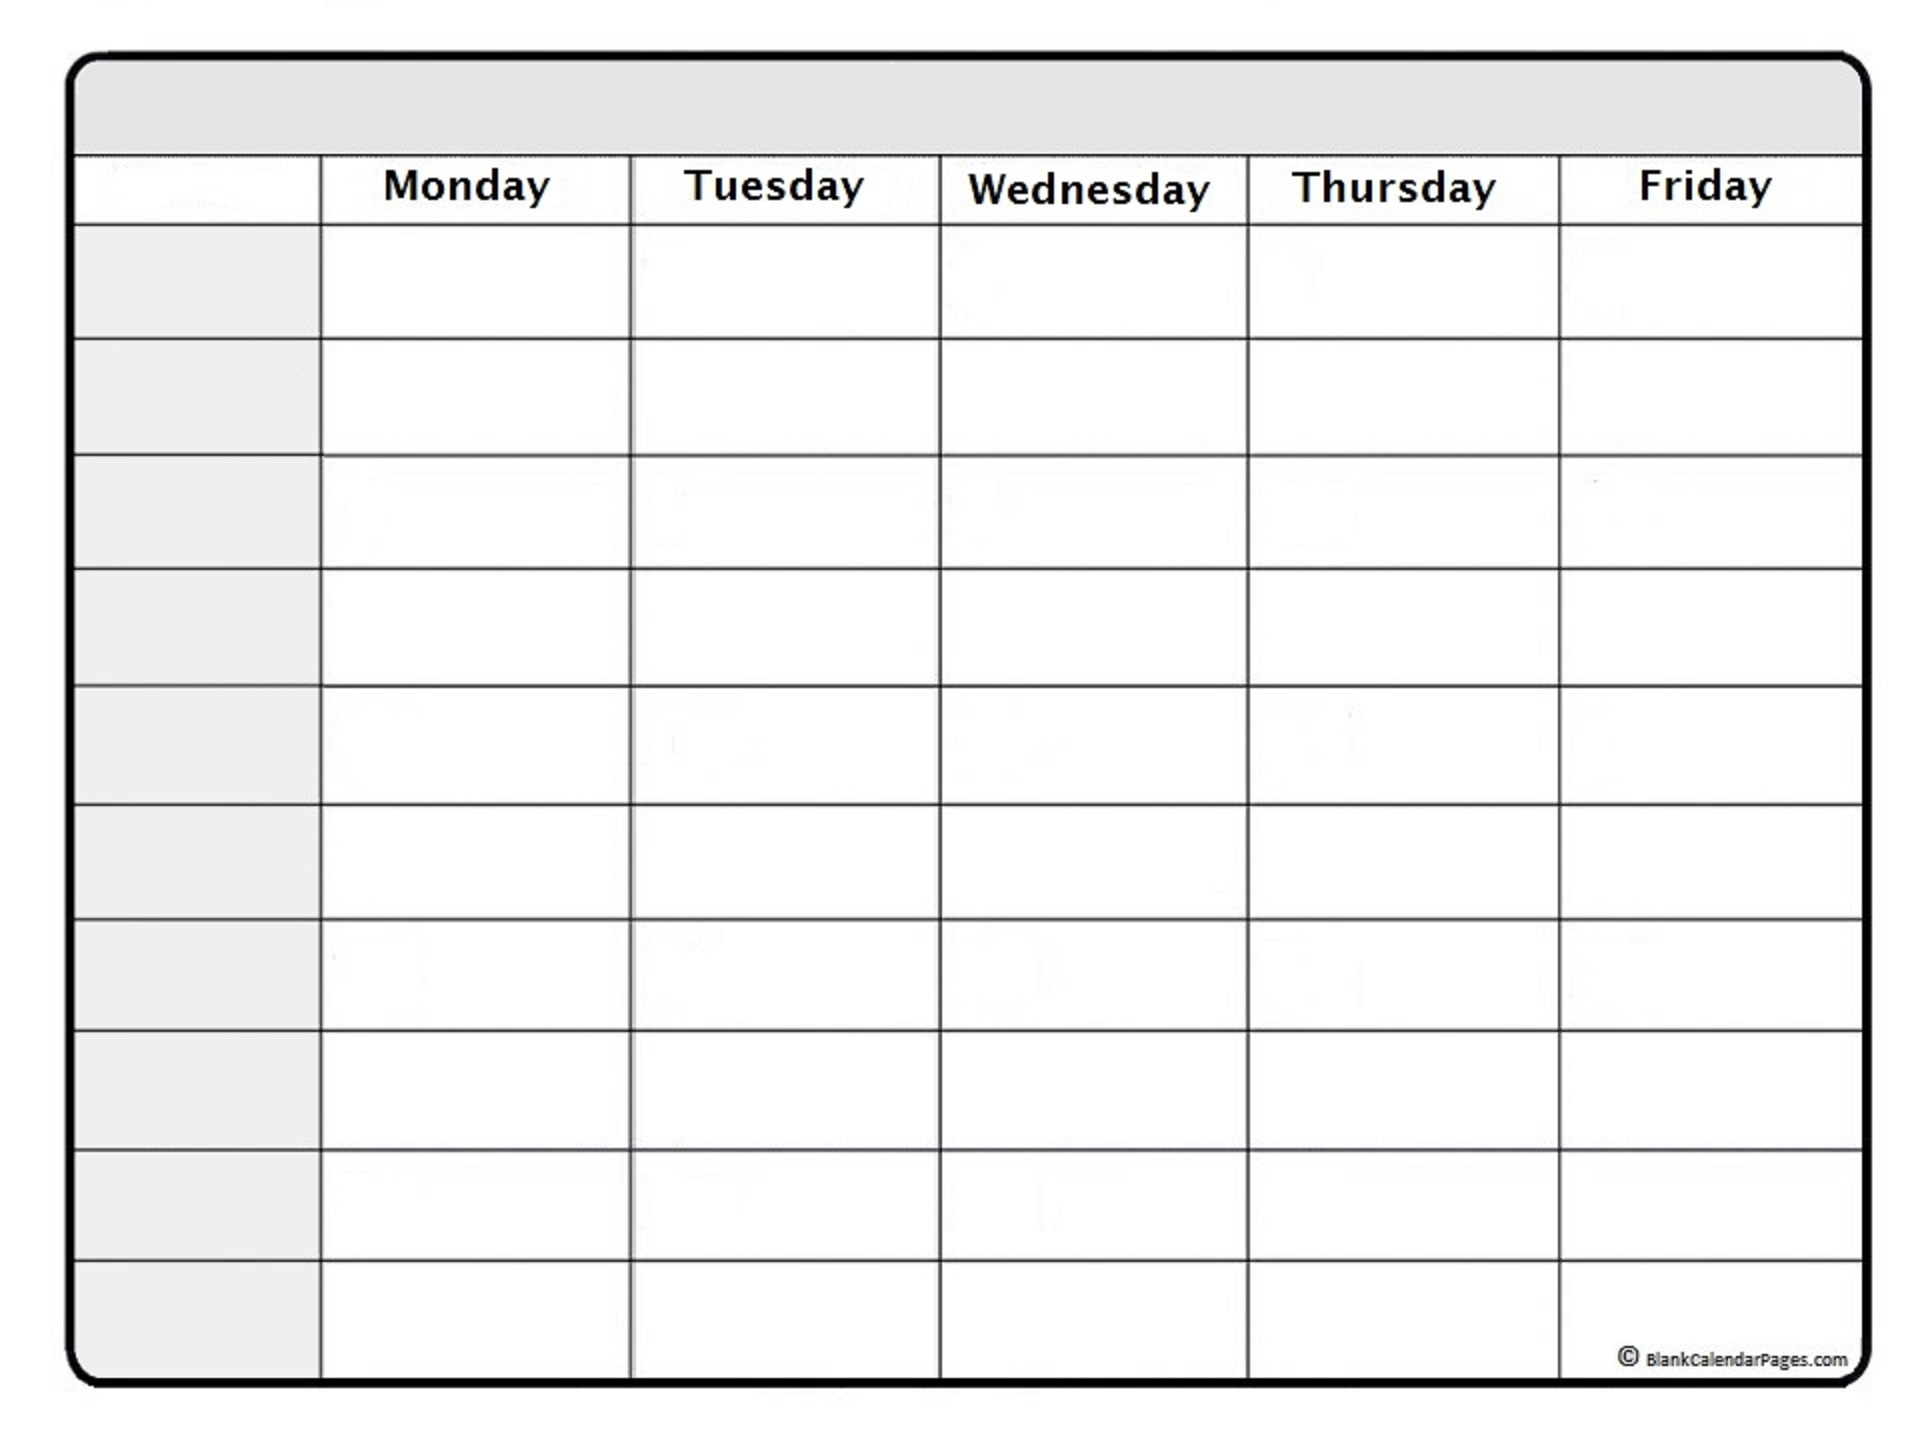 August 2020 Weekly Calendar | August 2020 Weekly Calendar pertaining to Free Printable One Week Calendar 2020